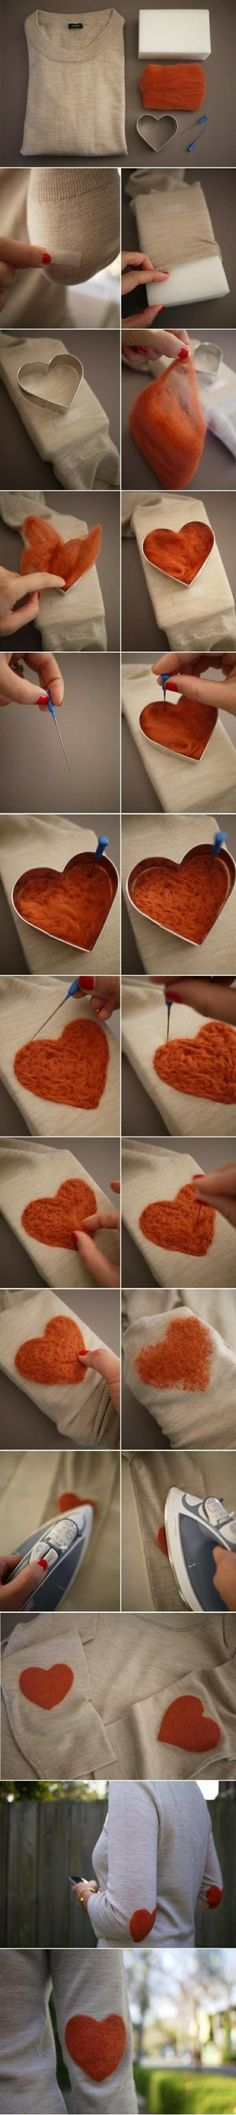 diy creative heart flower